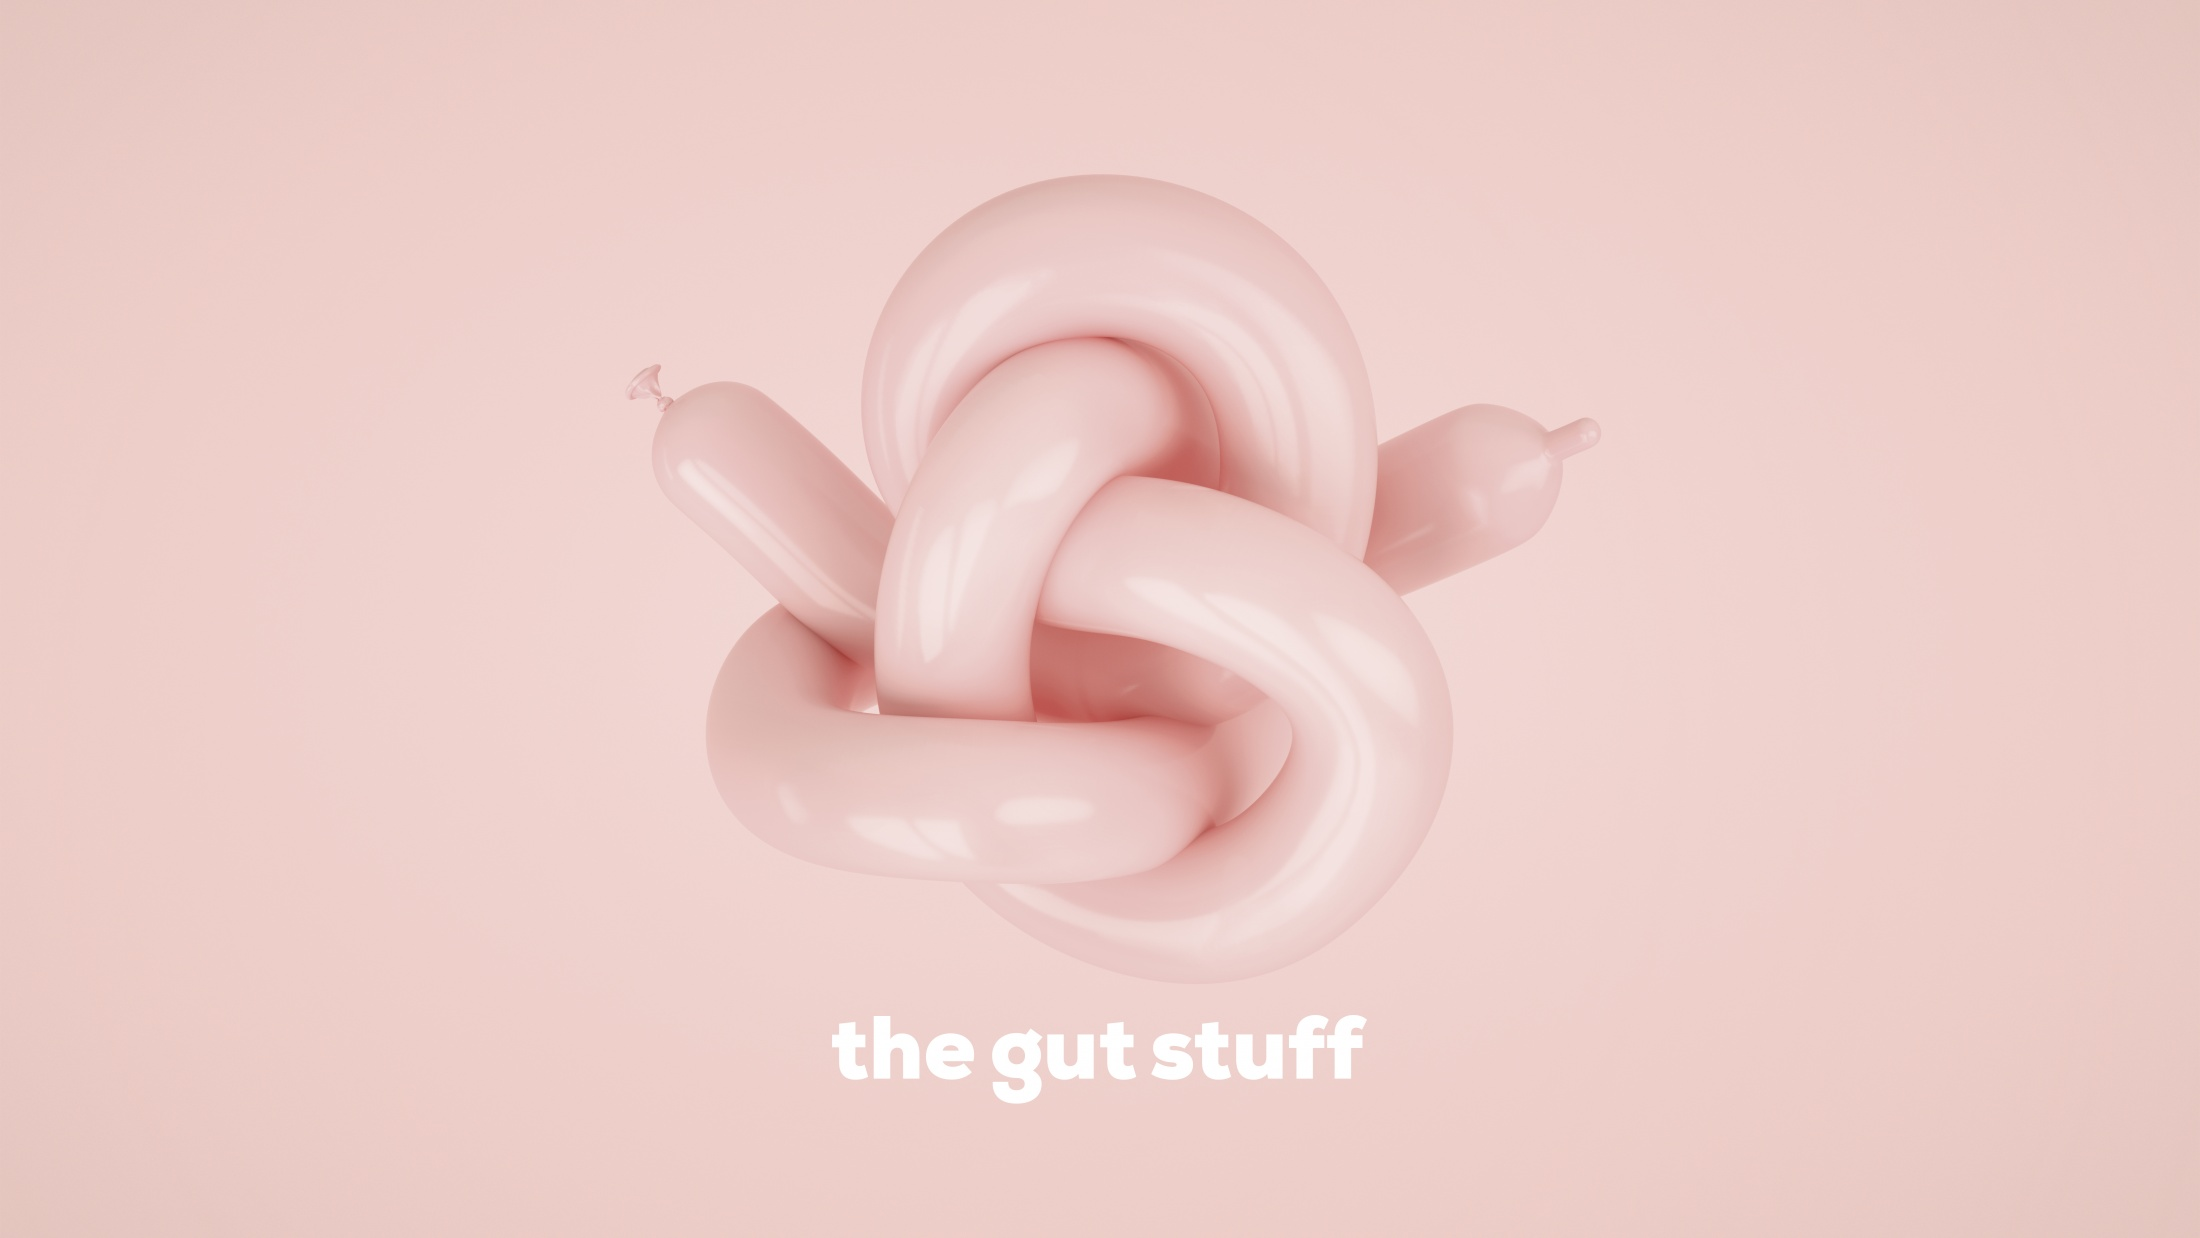 Thumbnail for The Gut Stuff